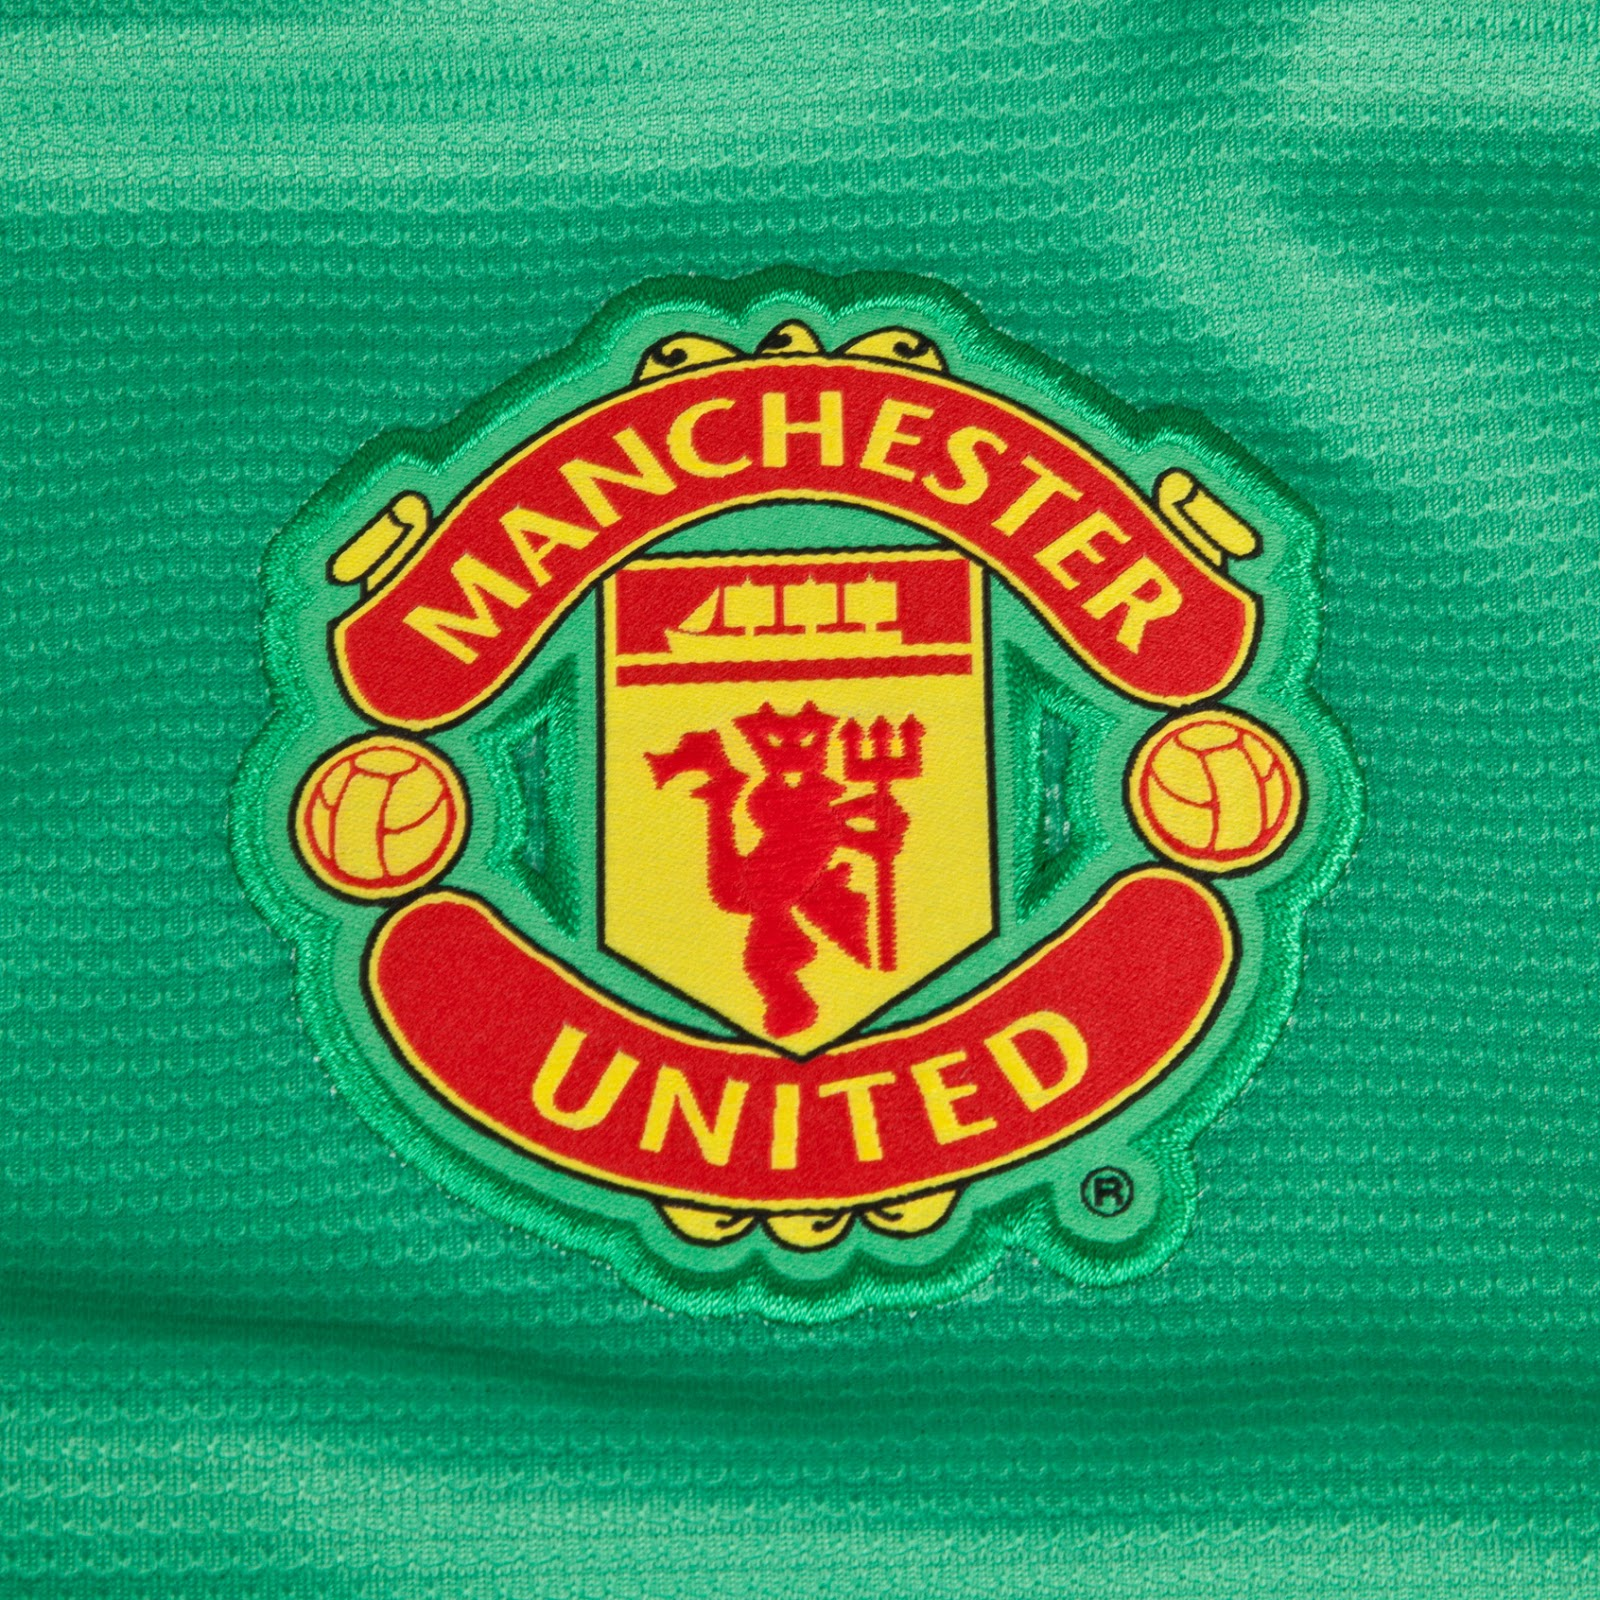 Manchester united 13 14 2013 14 home kit goalkeeper kits manchester united 13 14 goalkeeper home kit voltagebd Images